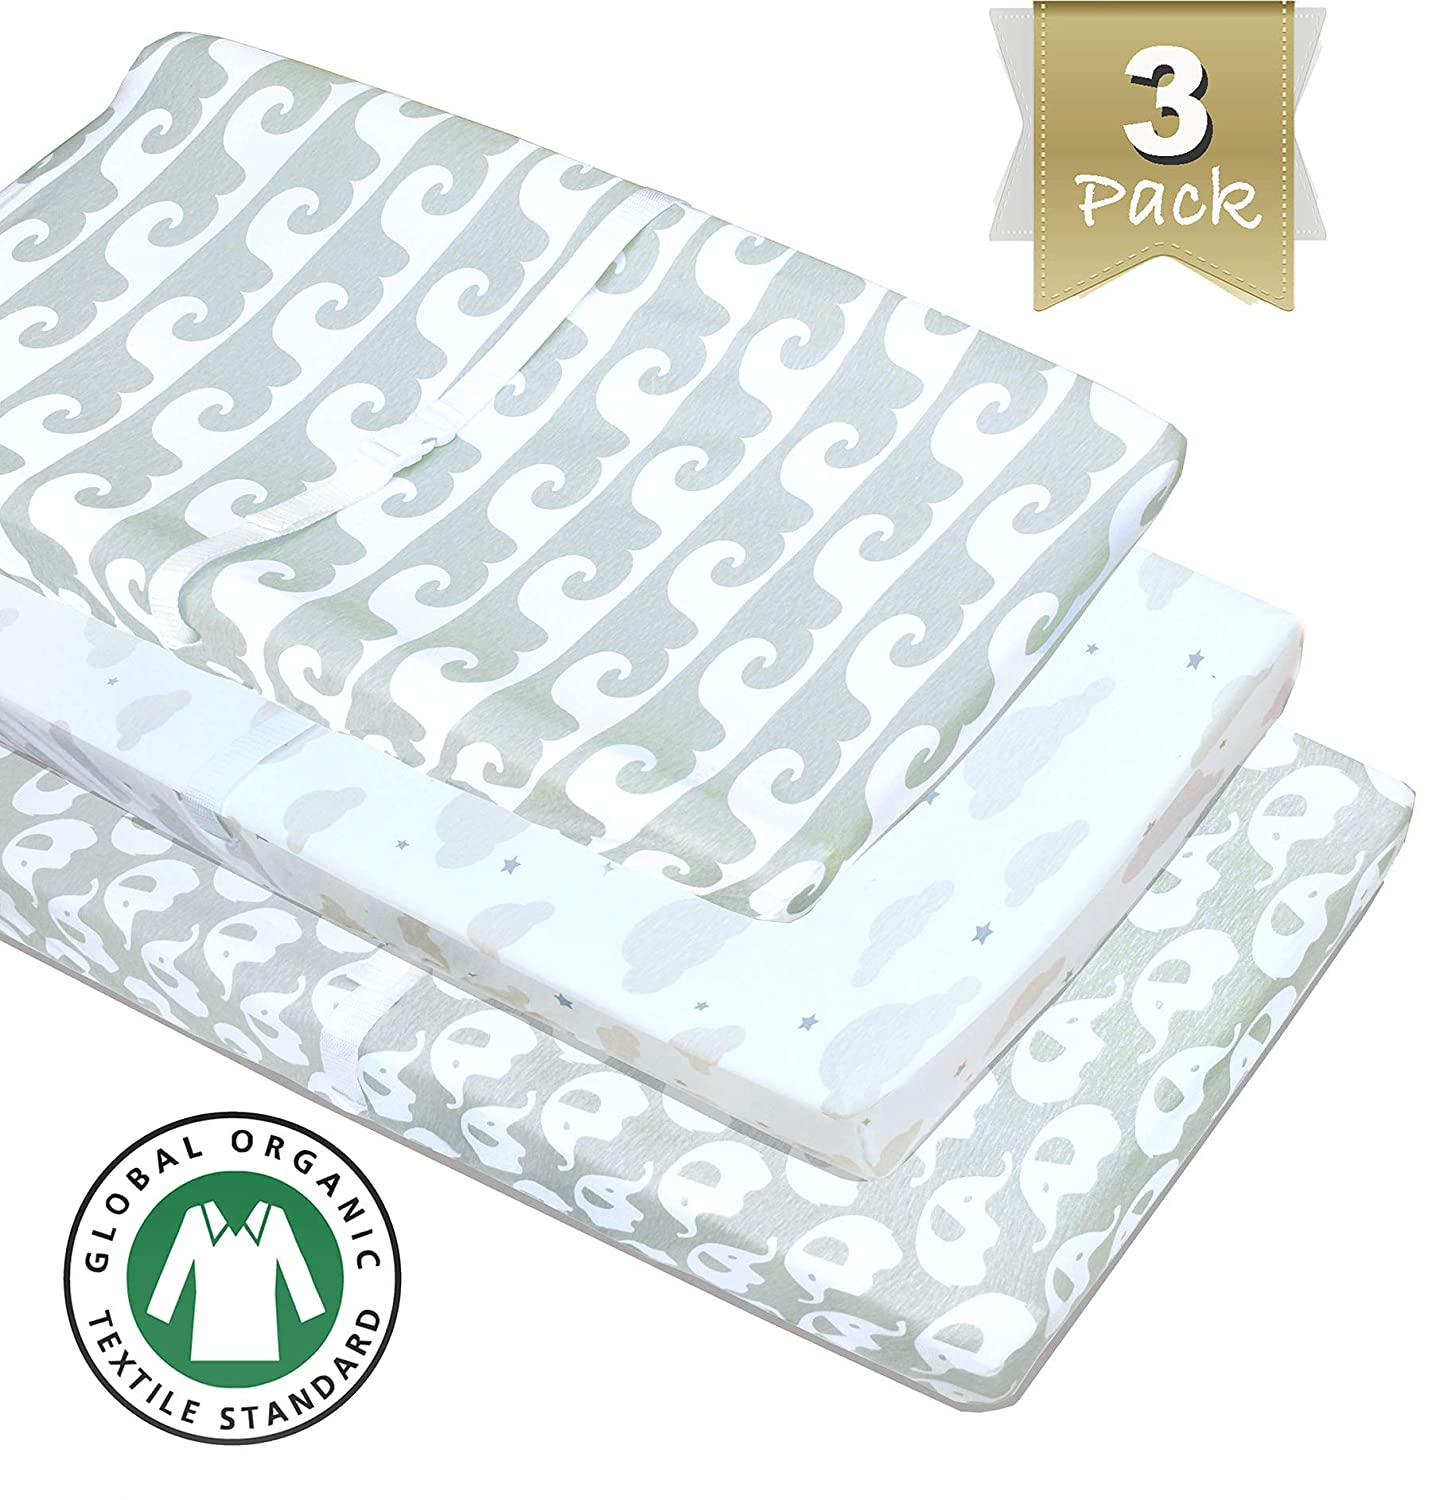 3 Pack 100% Organic Cotton Changing Pad Covers or Cradle Sheets, in Neutral Colors Unisex for Boy or Girl